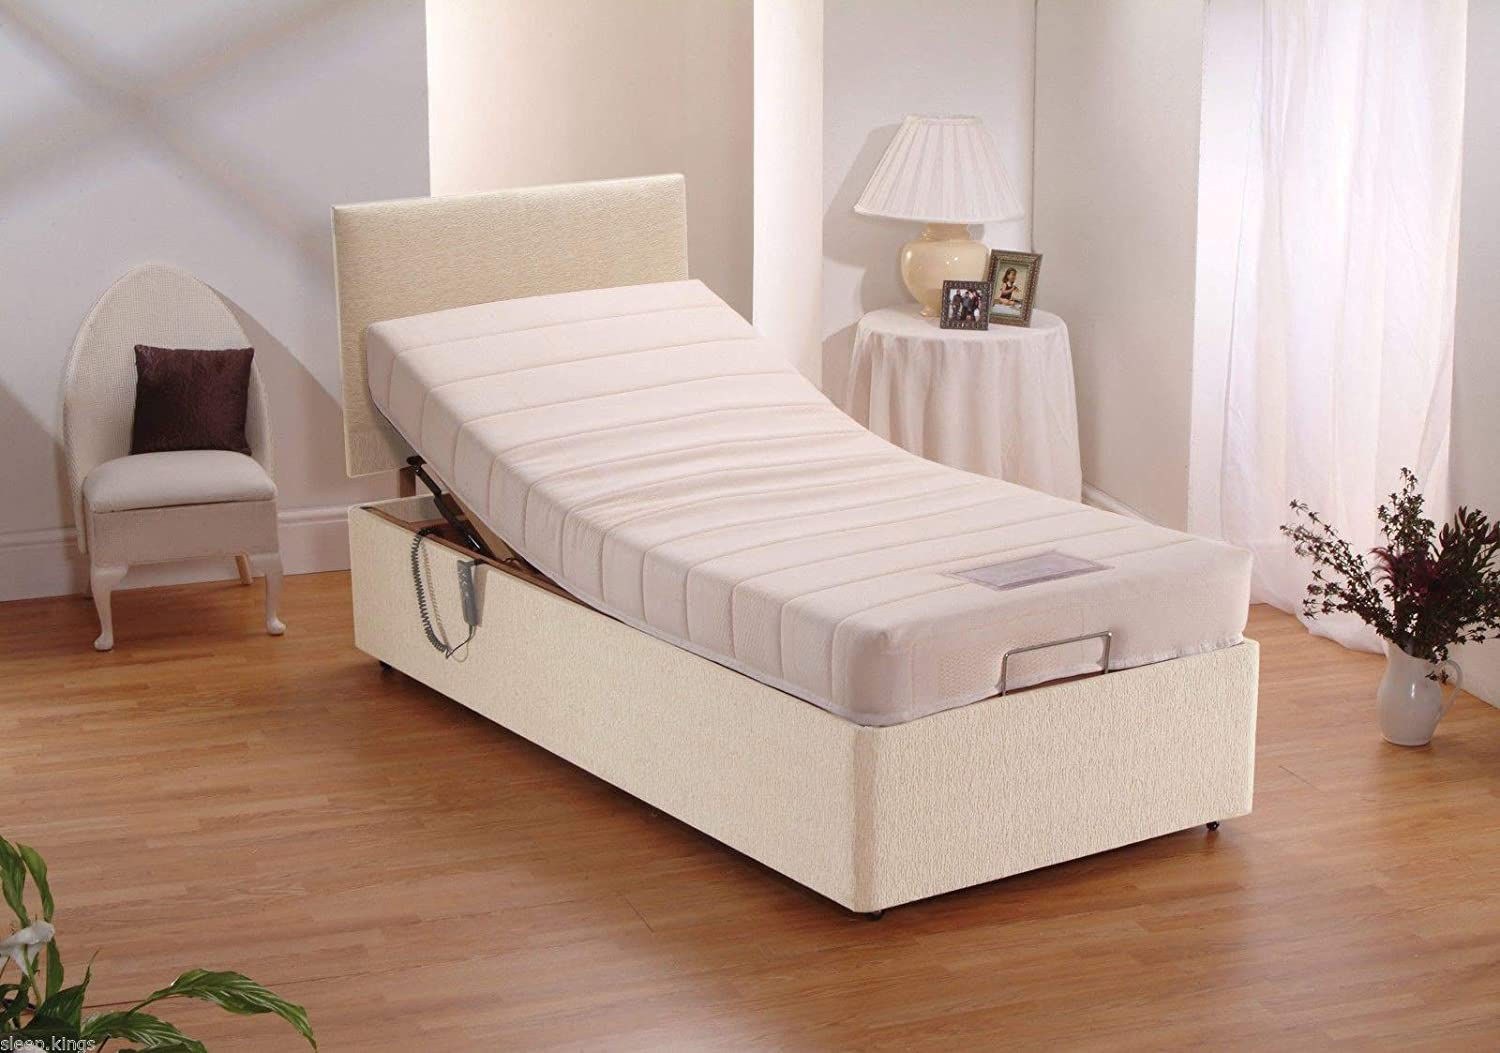 Sleepkings Quality 3ft Electric Bed Single Adjustable Bed With